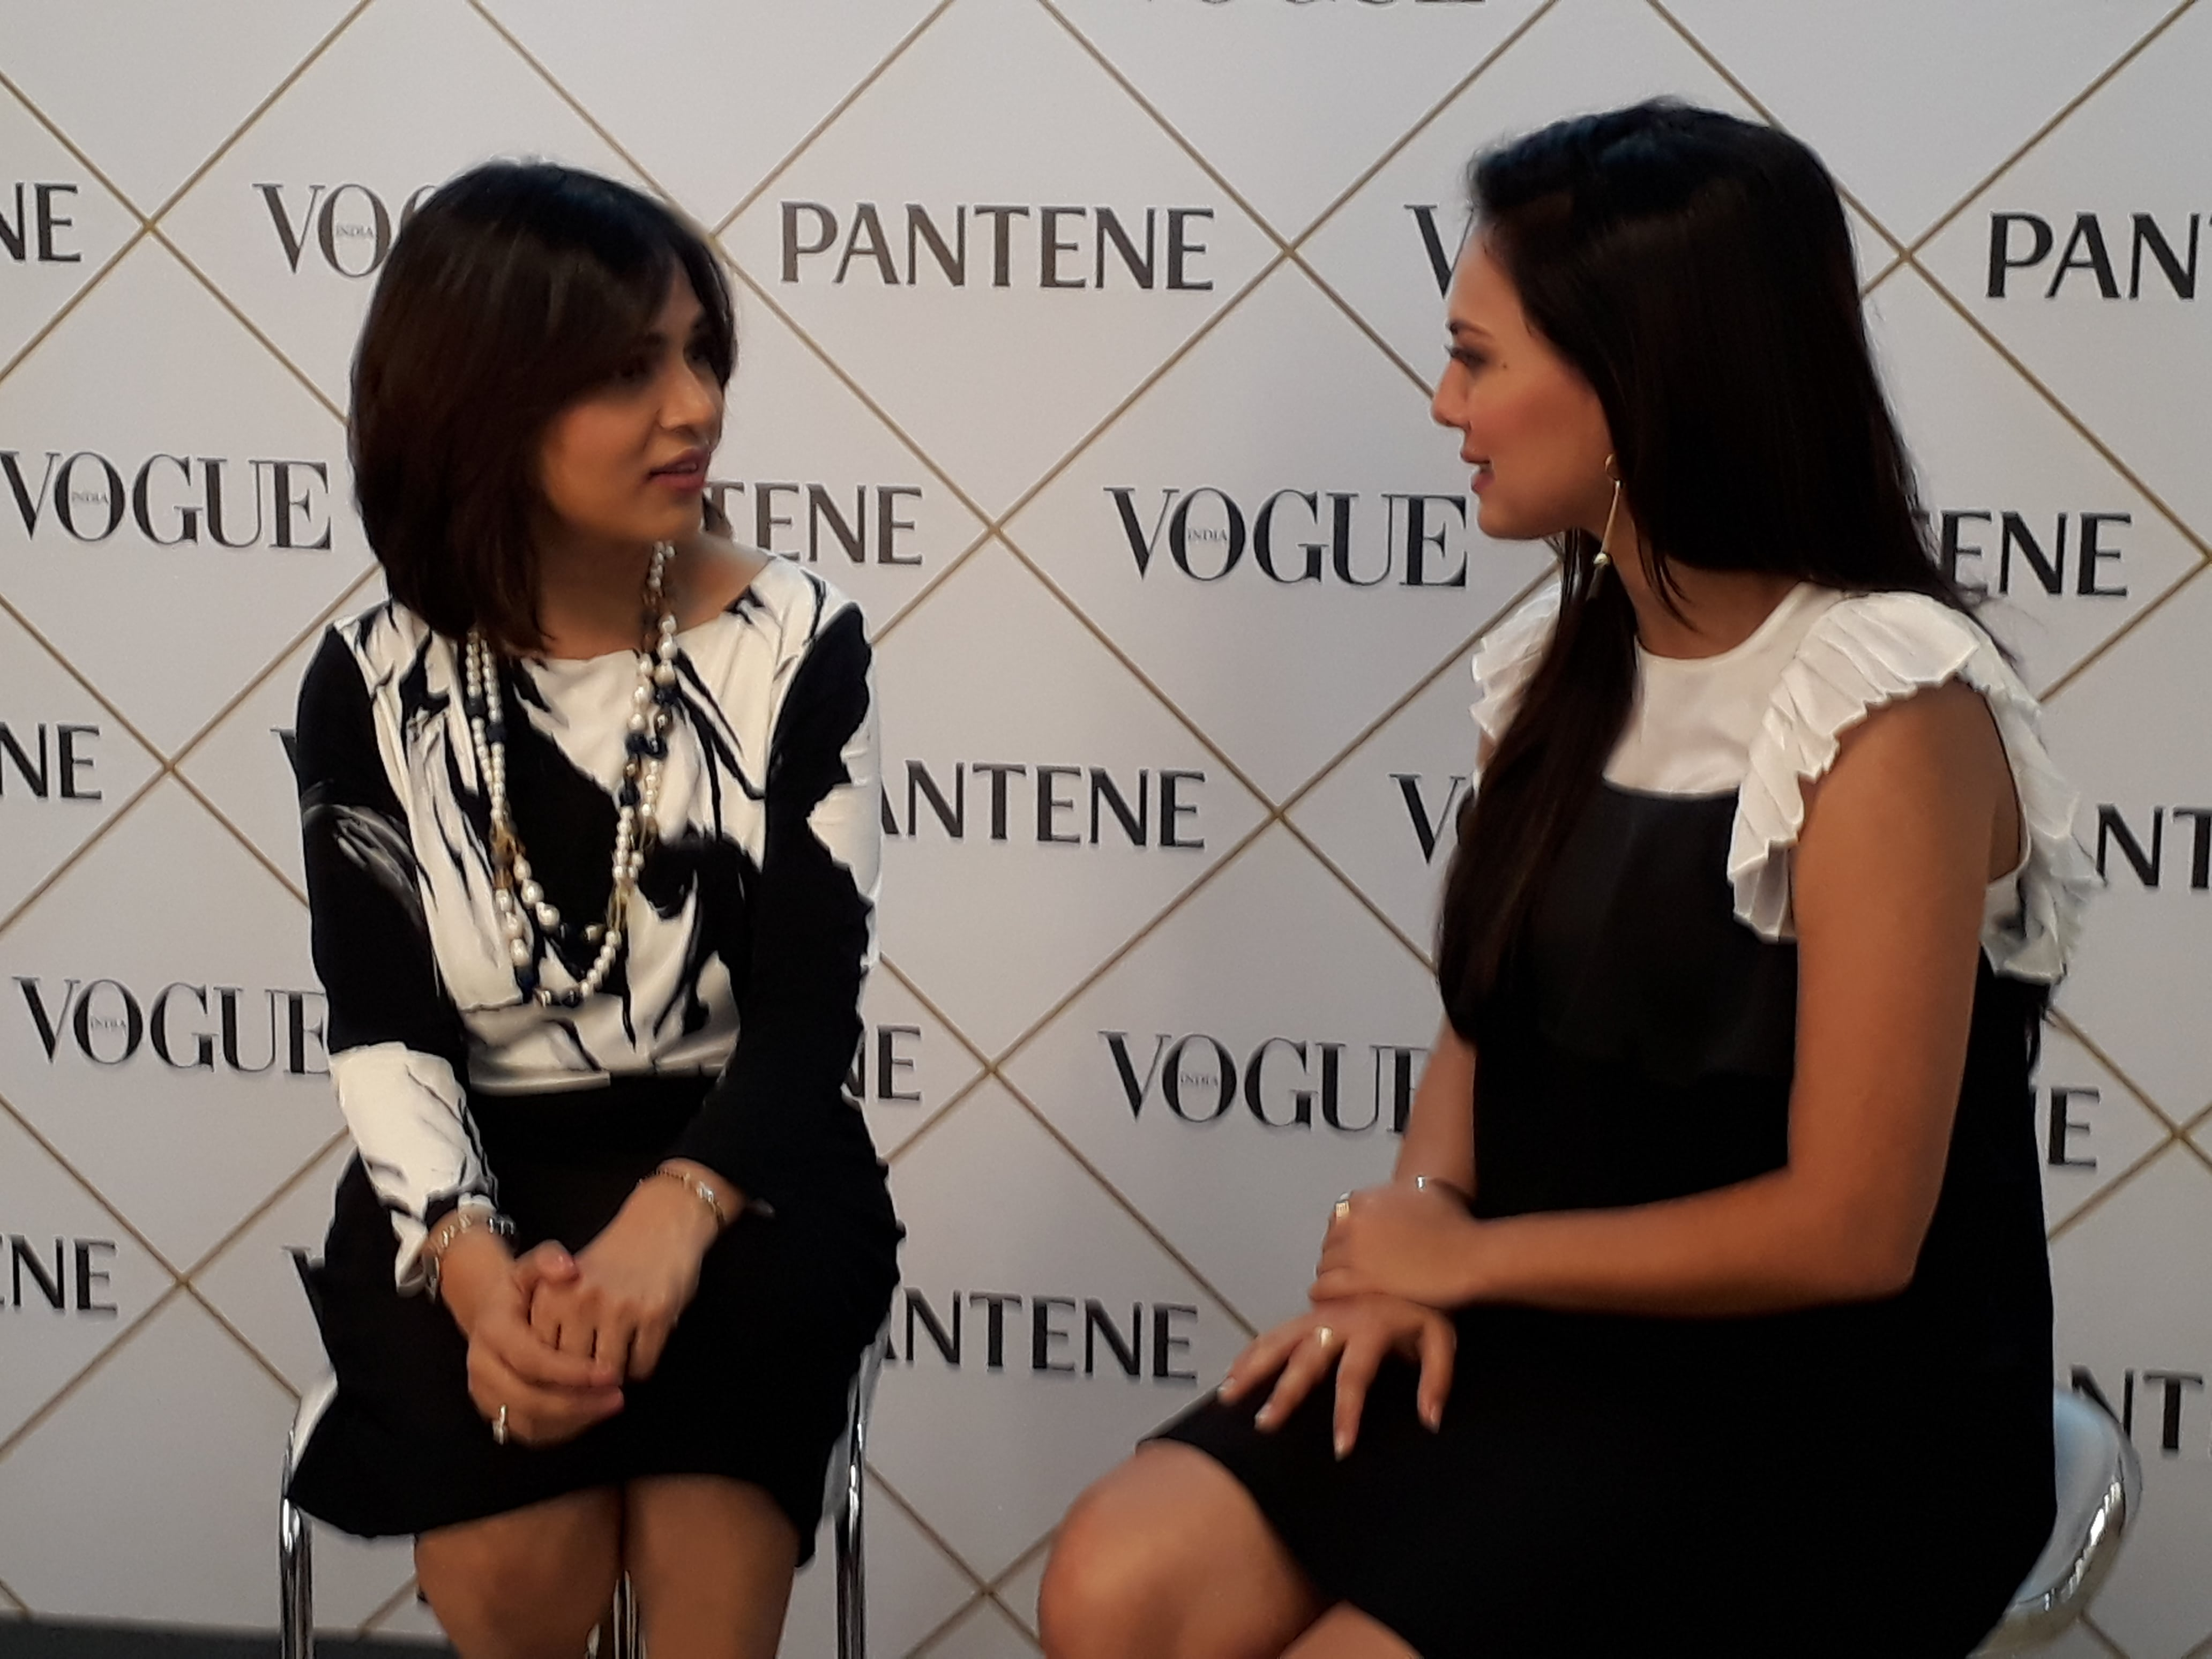 Judging the contestants for Pantene Pro-V contest for Vogue